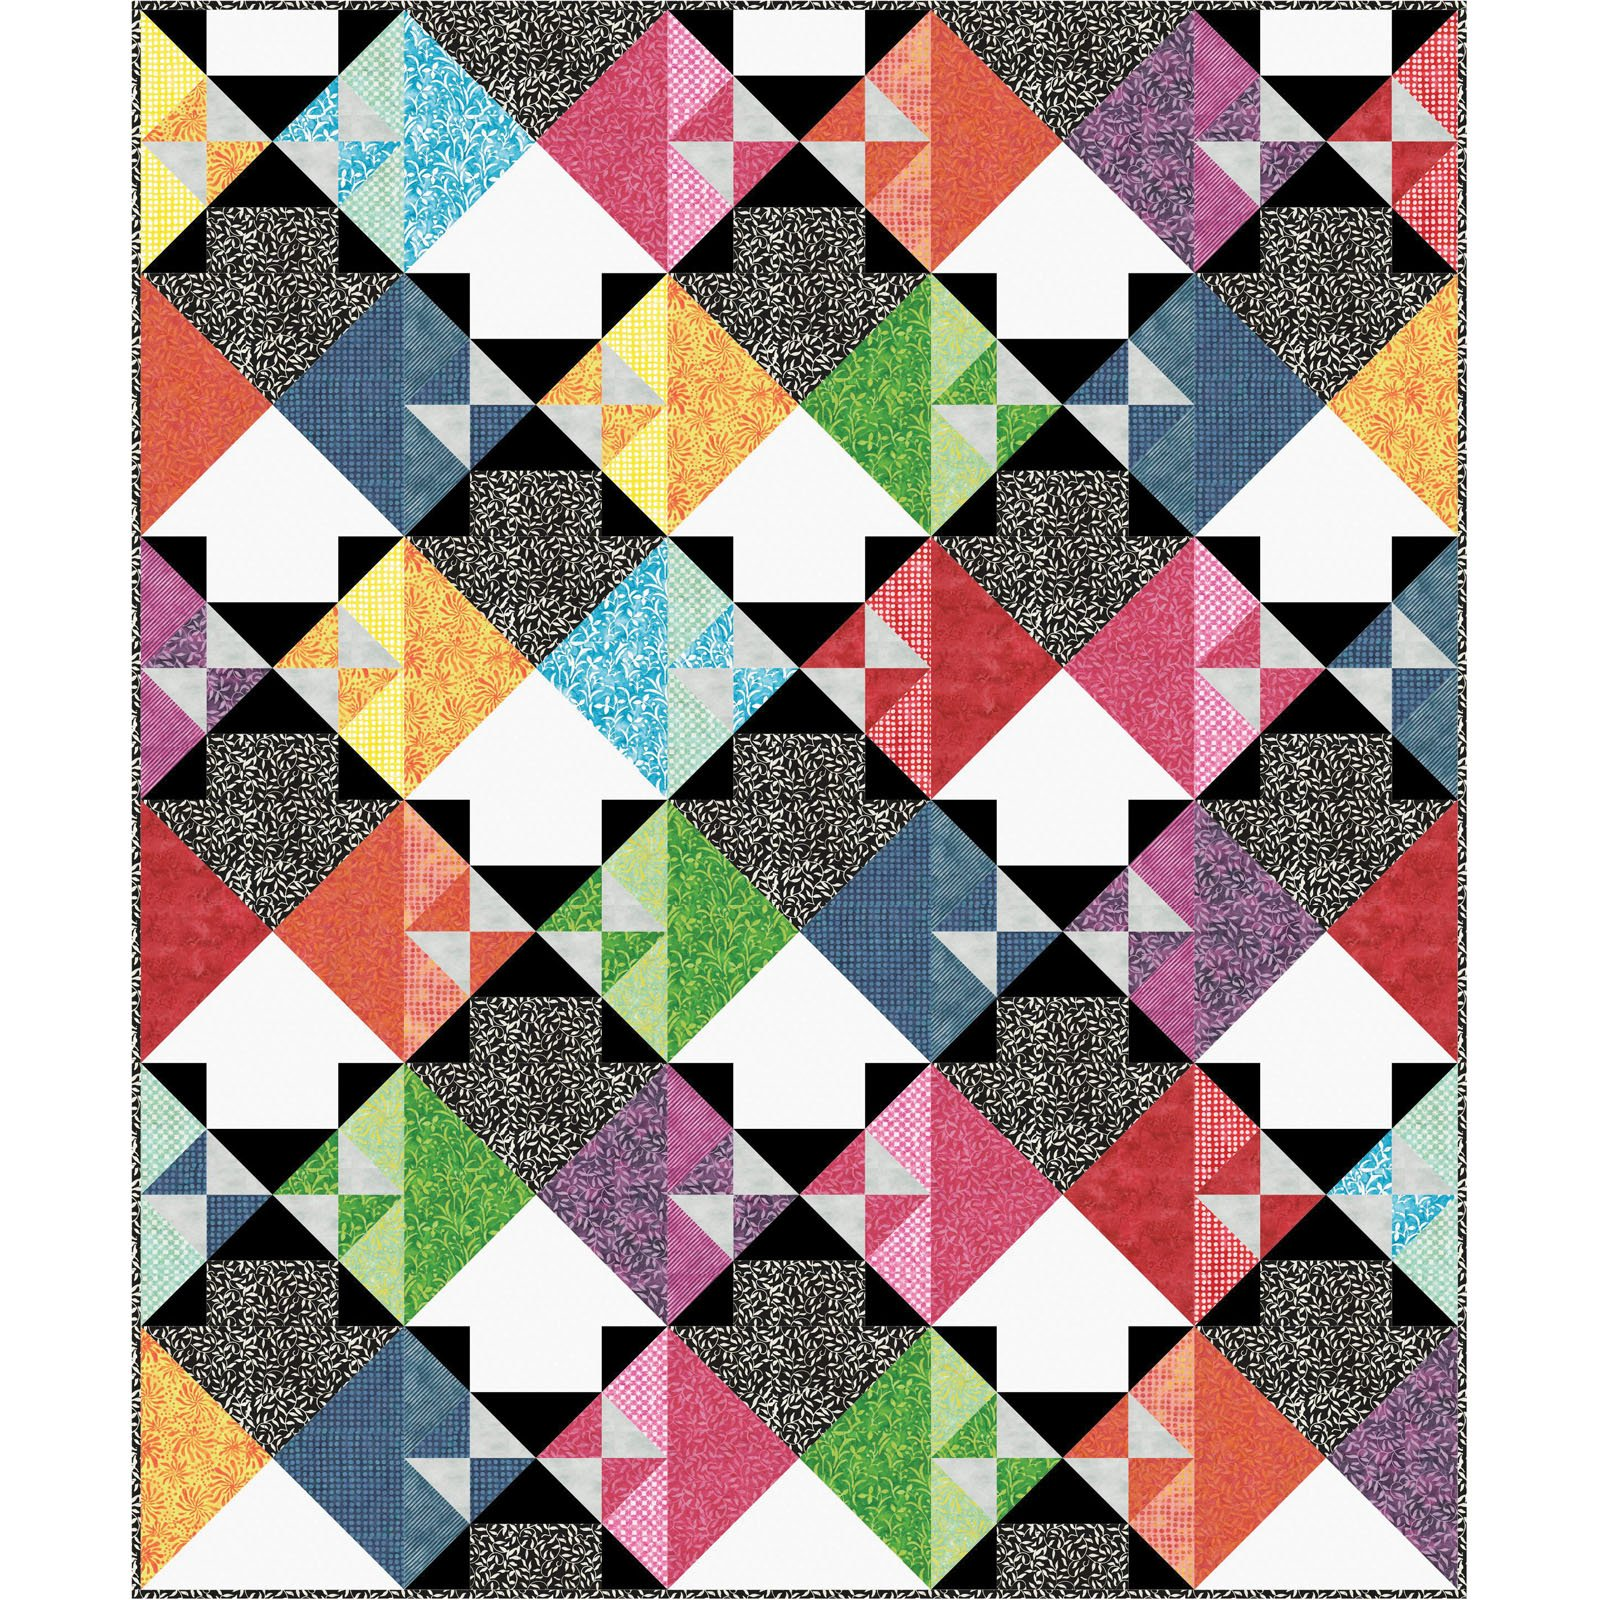 EESC-KITMASWHW - COLOR THERAPY BATIKS - WHICH WAY KIT 71 X 85 - ARRIVING DECEMBER 2020